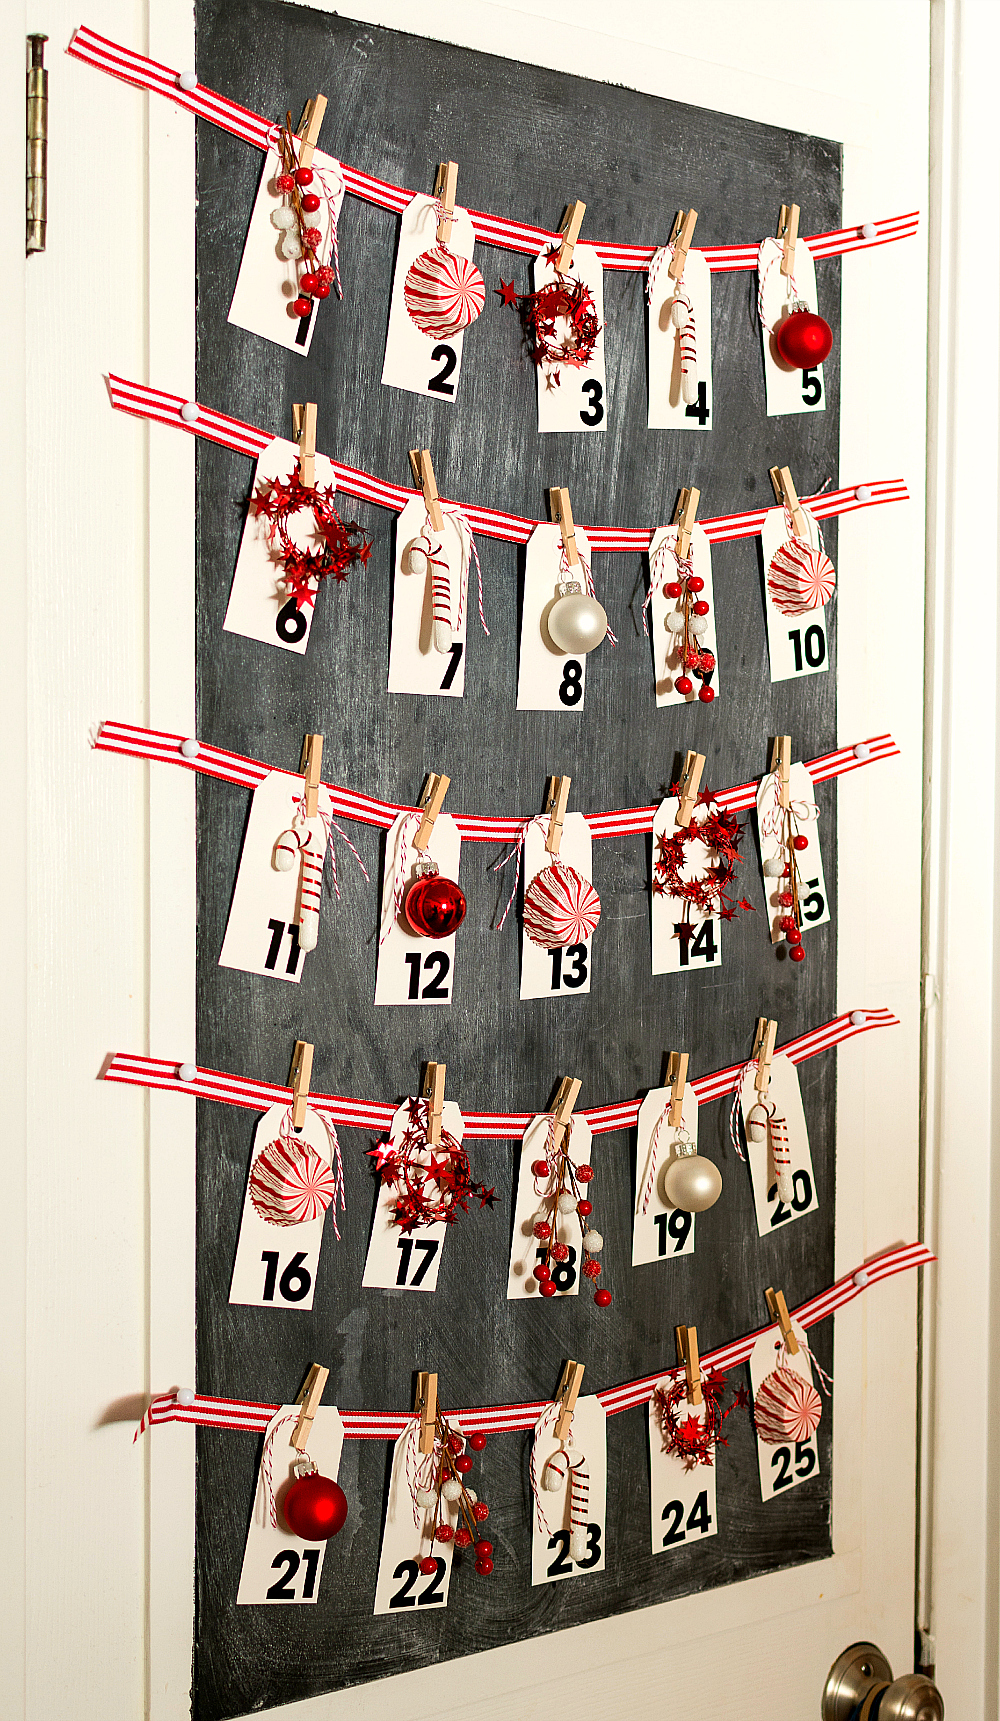 Diy Christian Advent Calendar : Christmas advent calendar